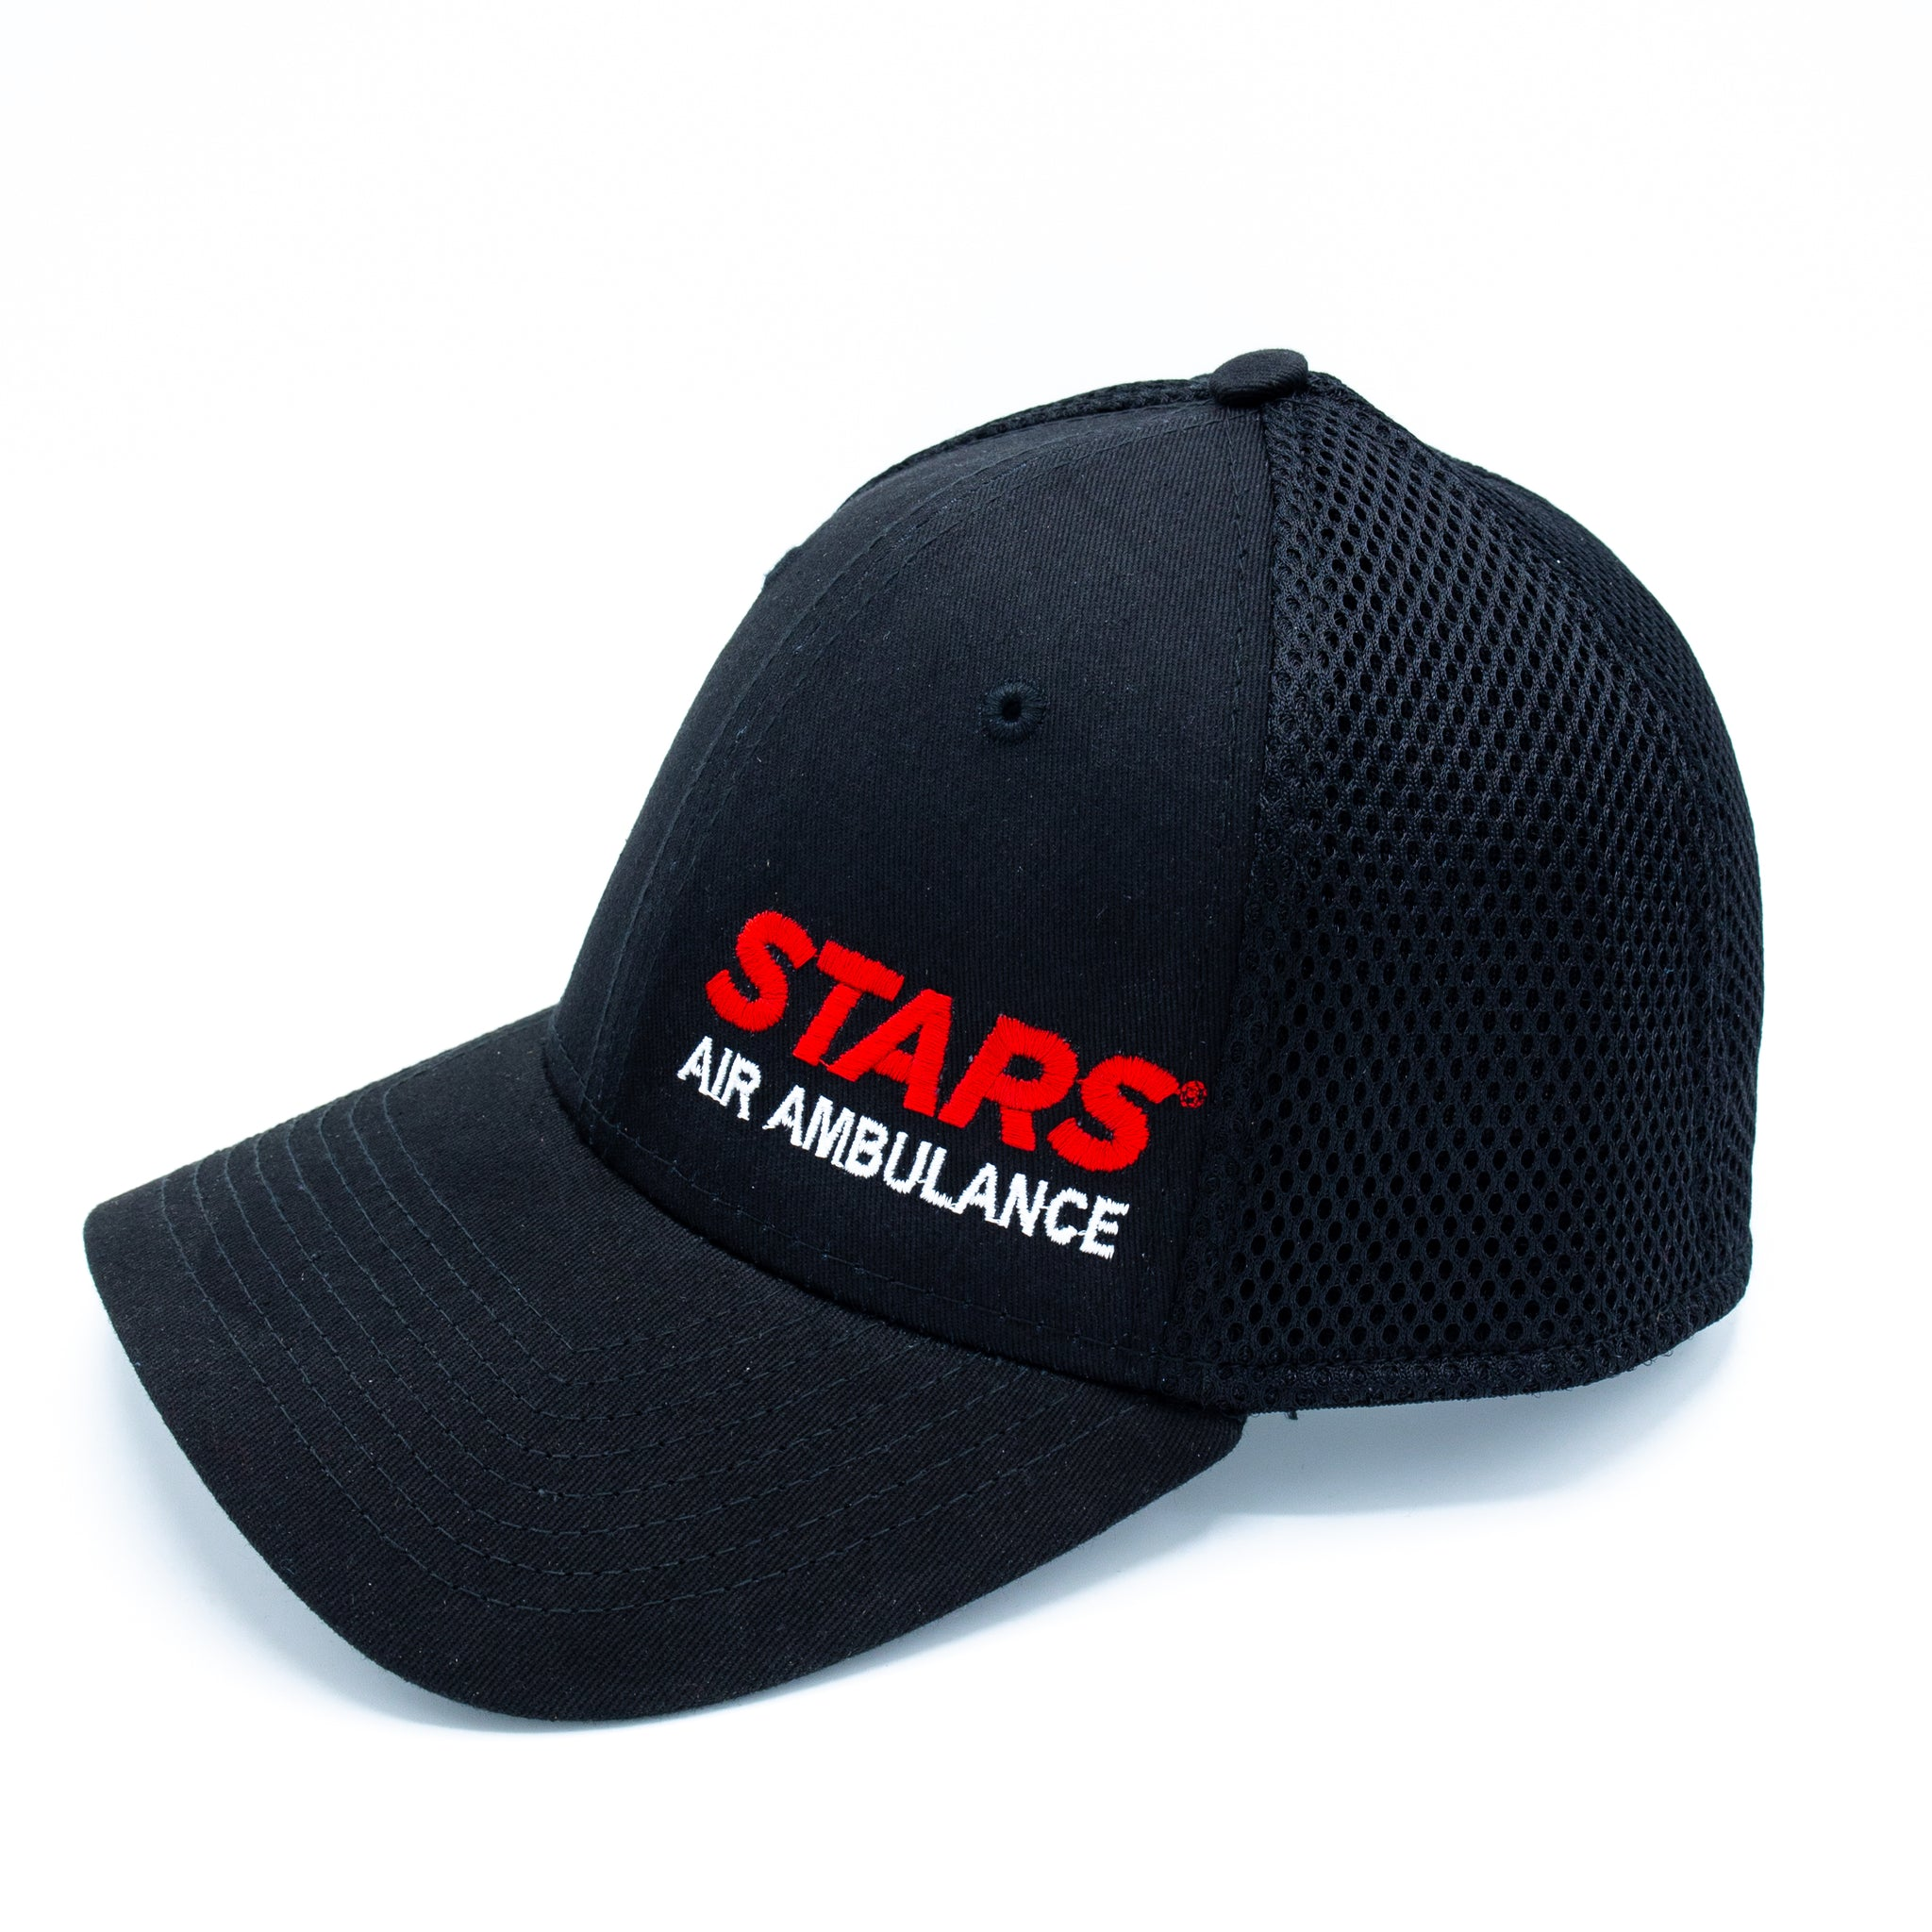 Black Tour Cap